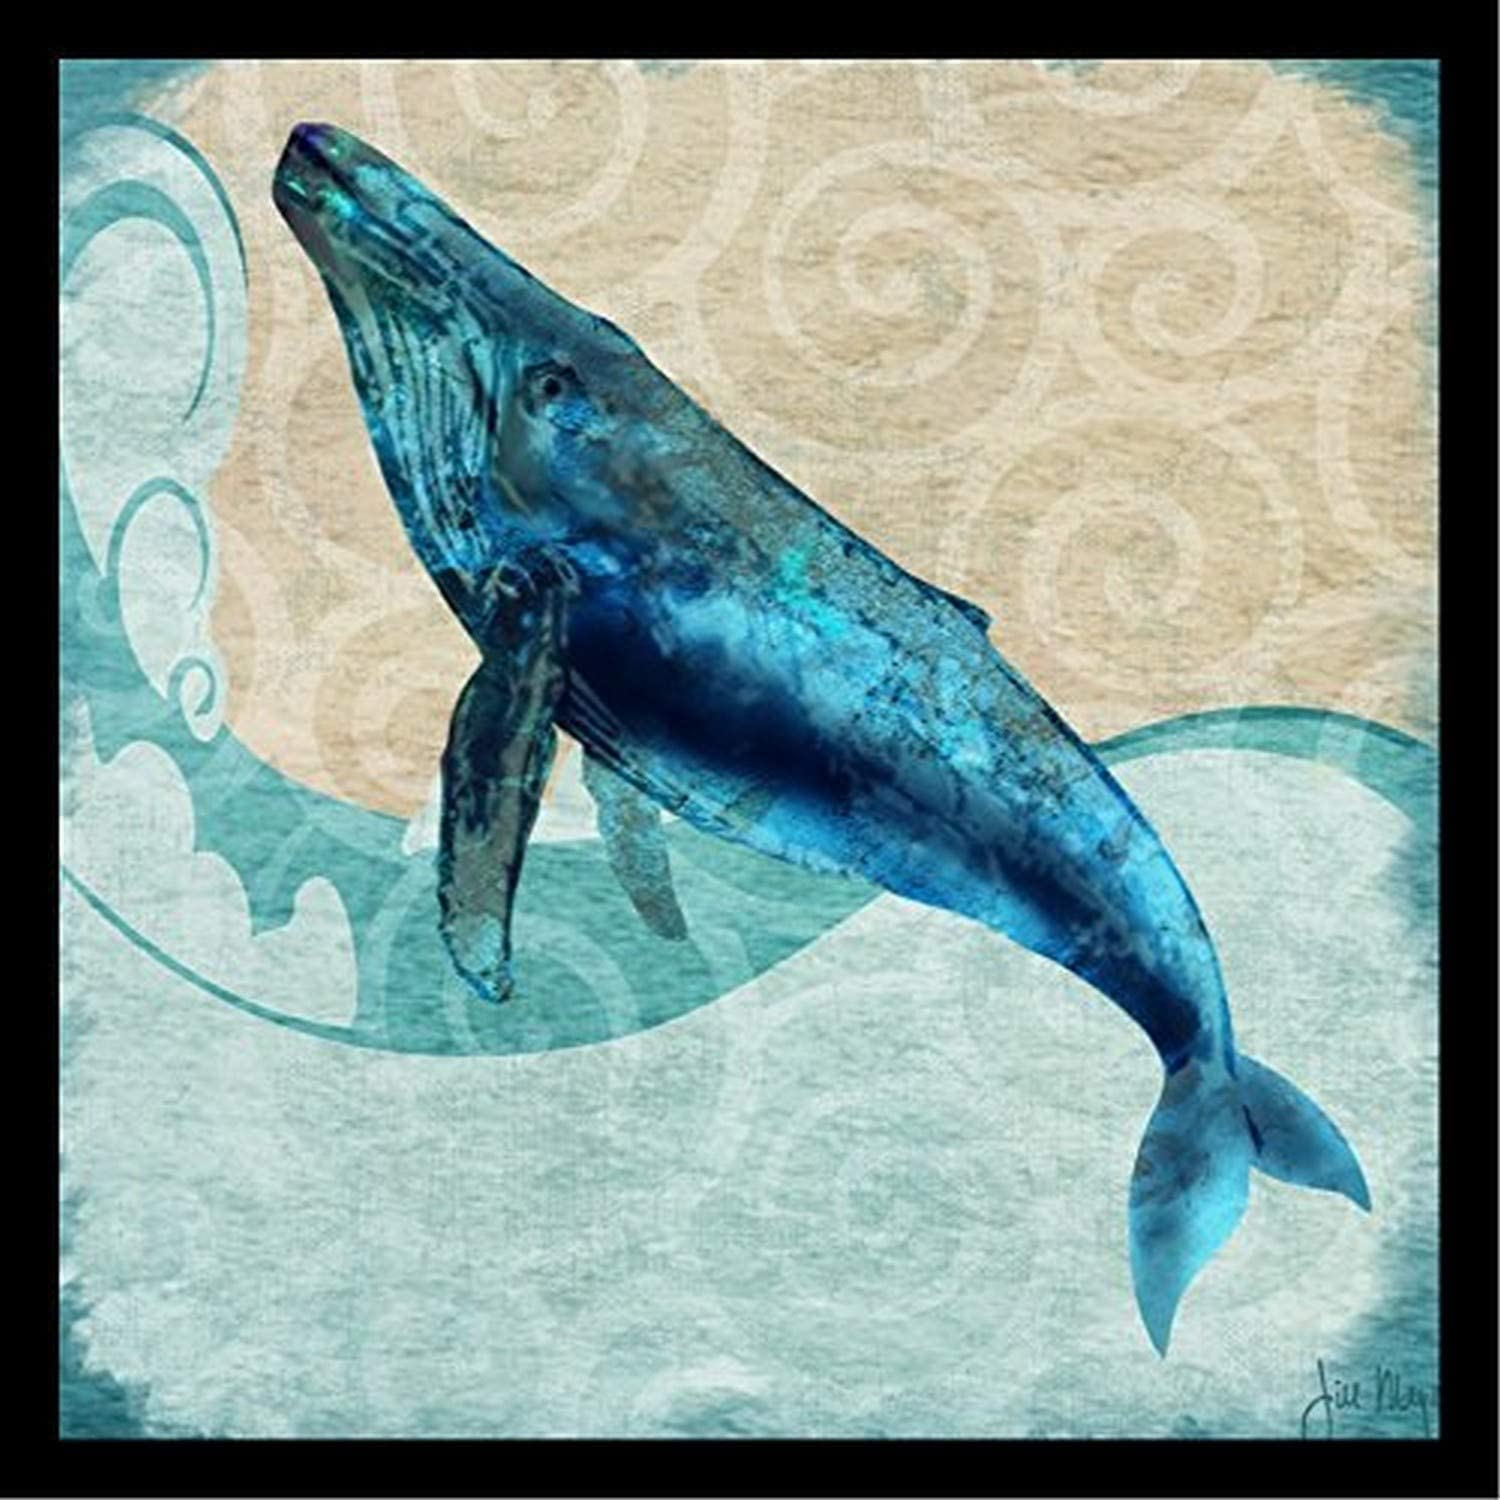 Amazon Com Buyartforless Framed Humpback Whale By Jill Meyer 12x12 Art Print Poster Coastal Ocean Painting Colorful Blue Whale Posters Prints